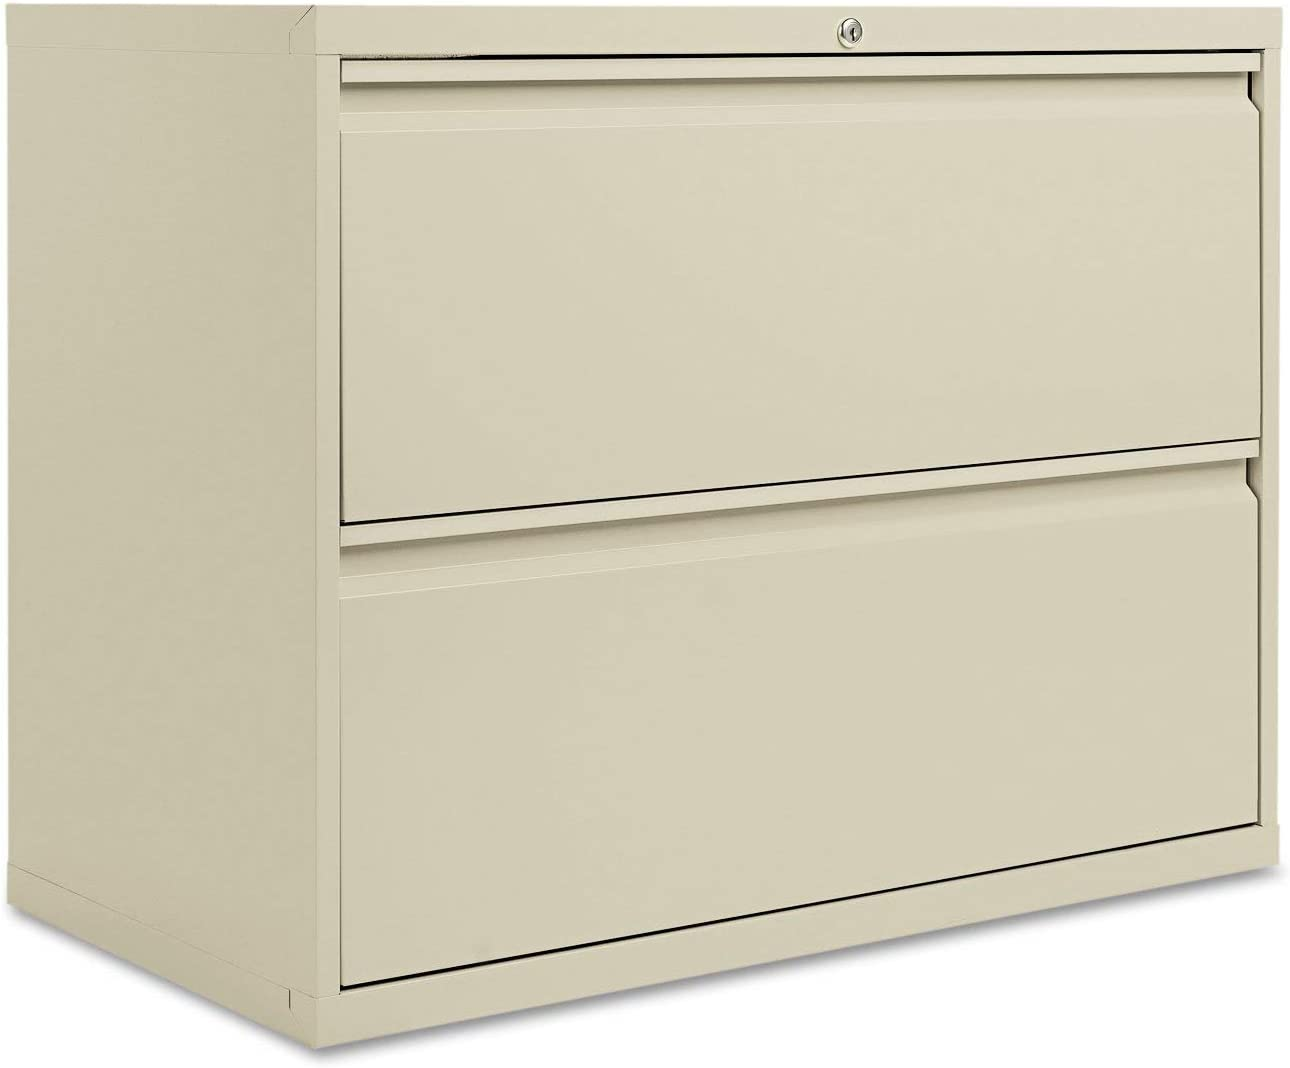 Alera LF3629PY Two-Drawer Lateral File Charlotte Mall X Ranking TOP19 4d 19-1 Cabinet 36w